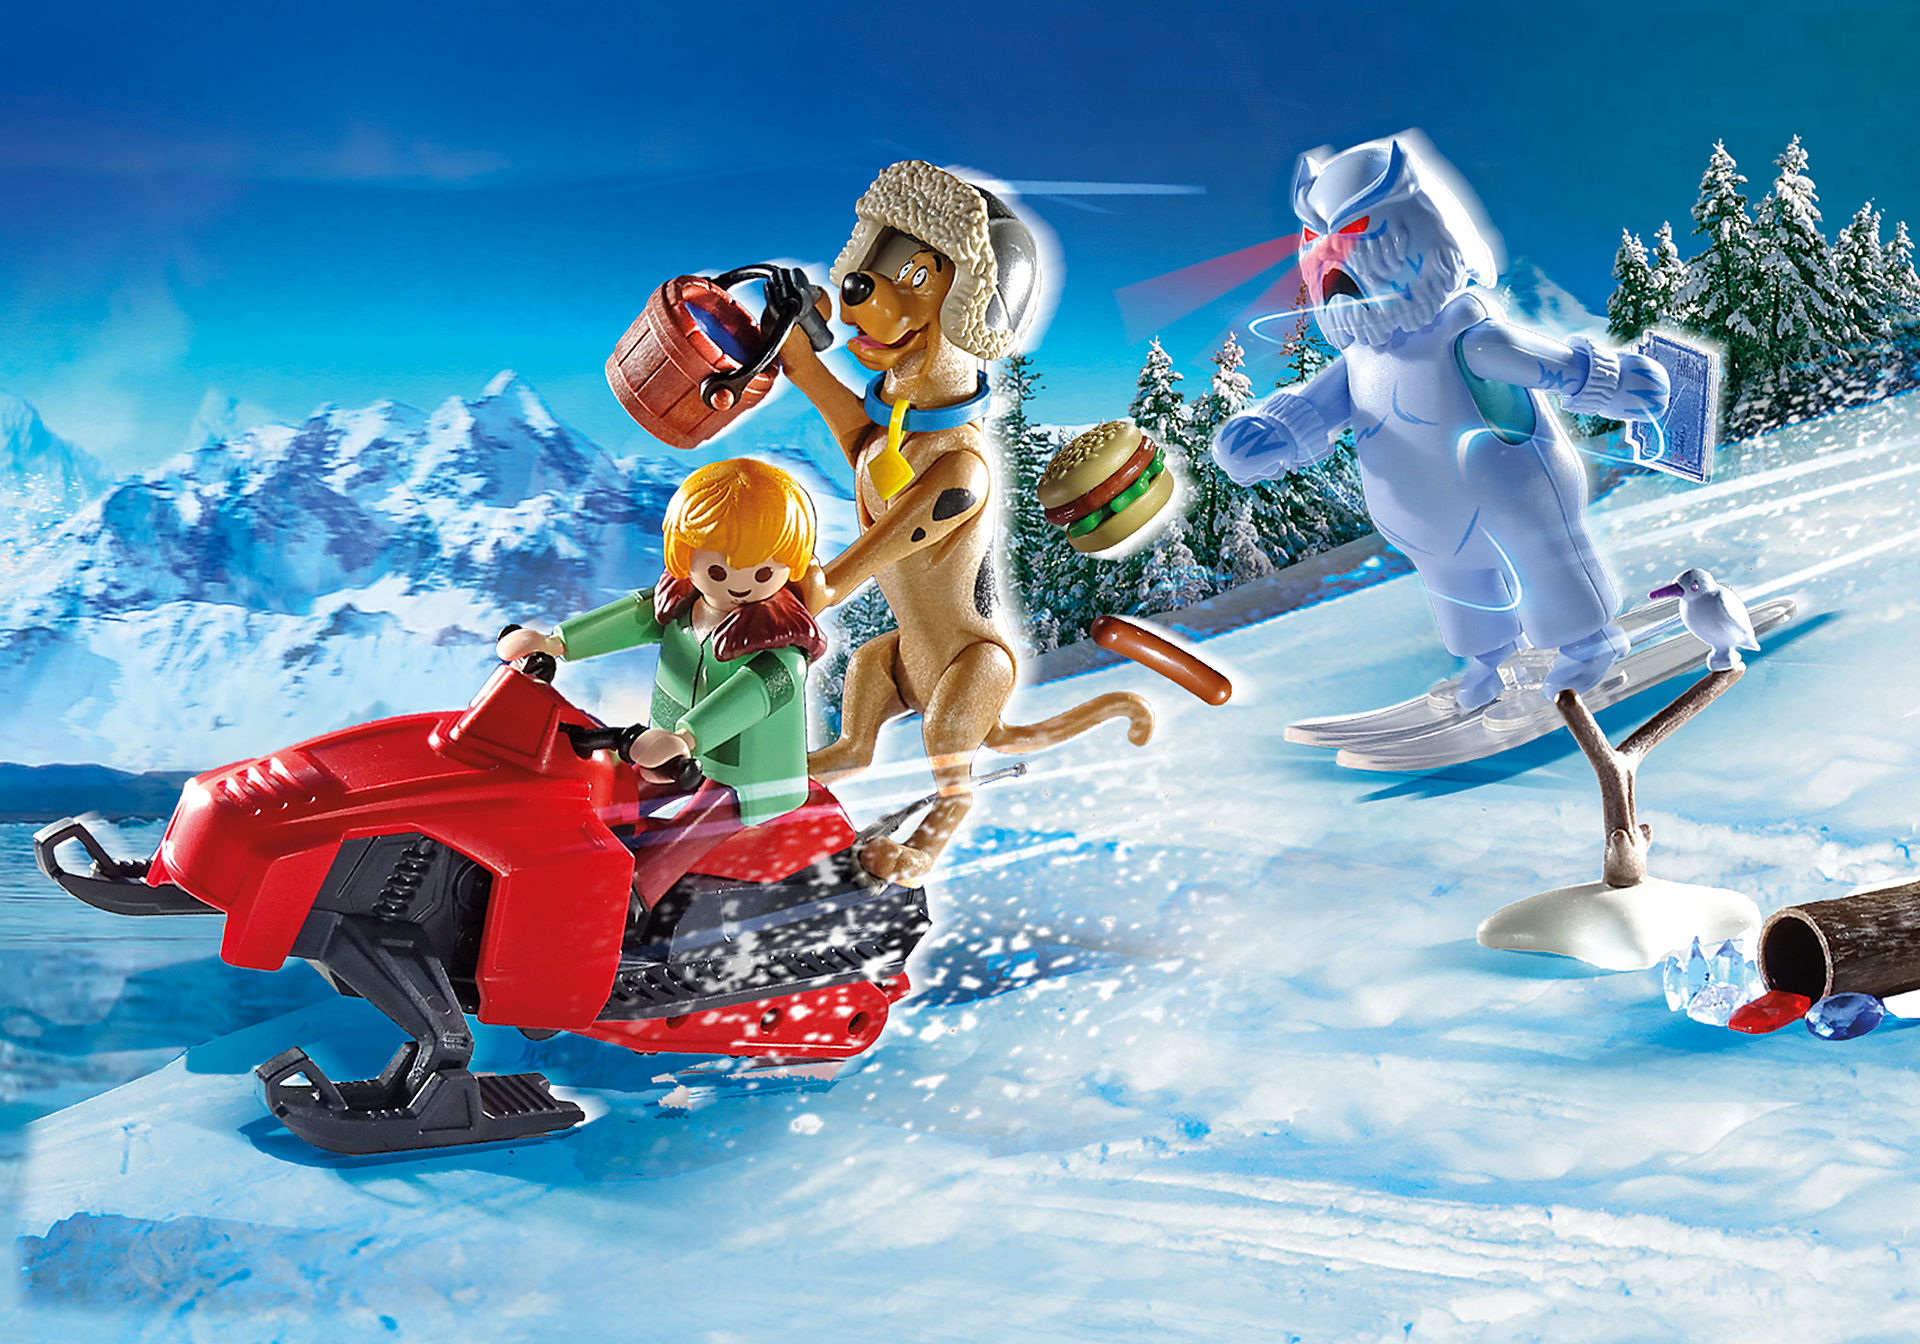 70706 SCOOBY-DOO avec abominable spectre des neiges  zoom image1